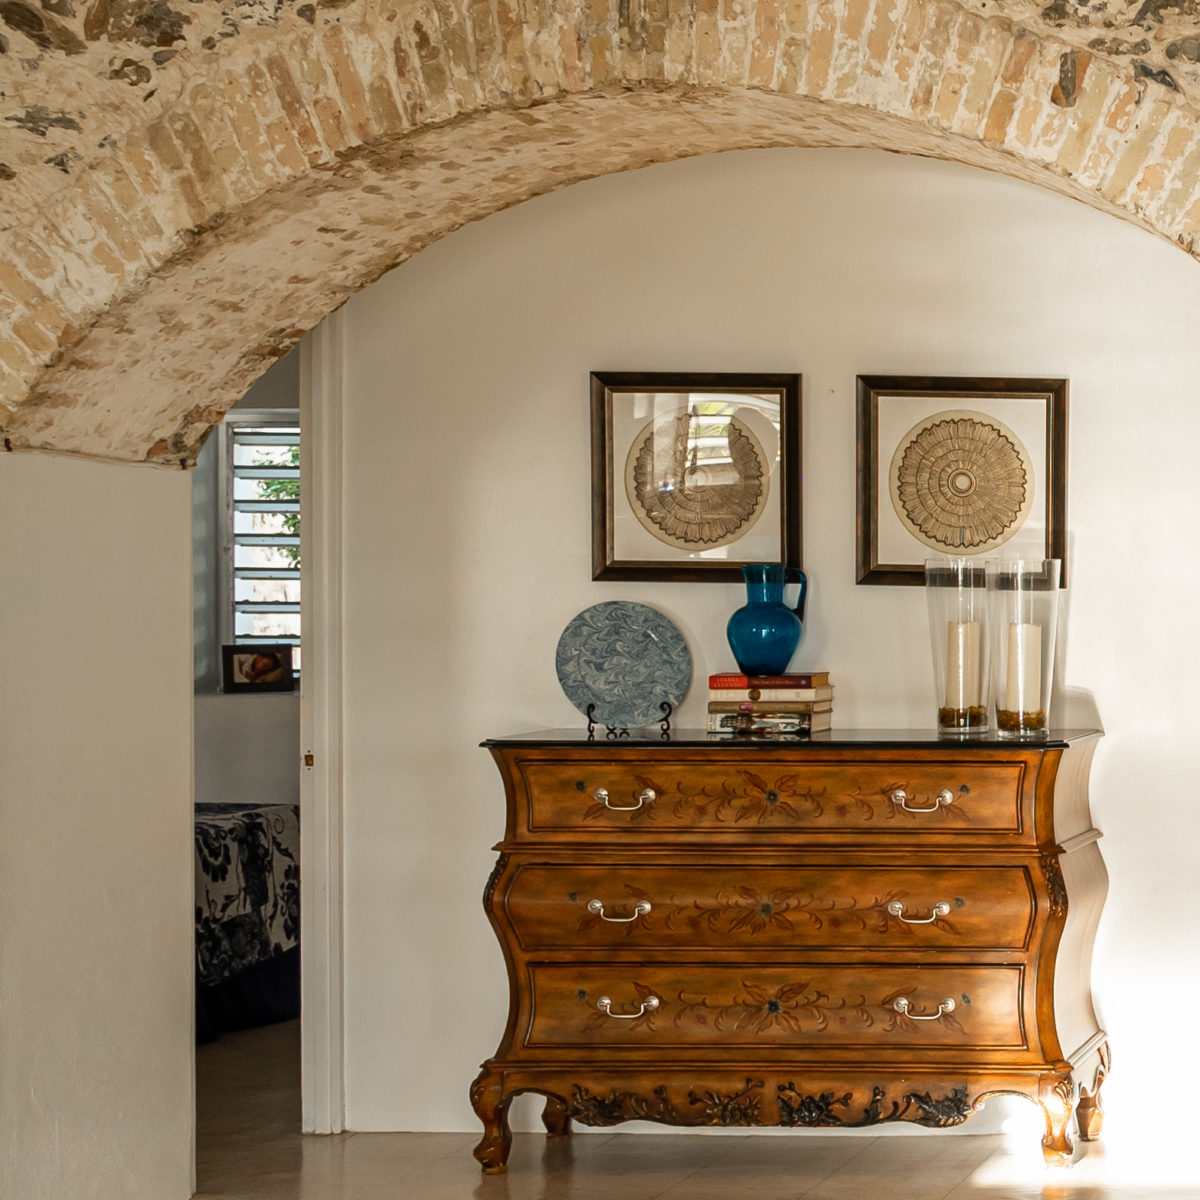 Vintage accents under the arches